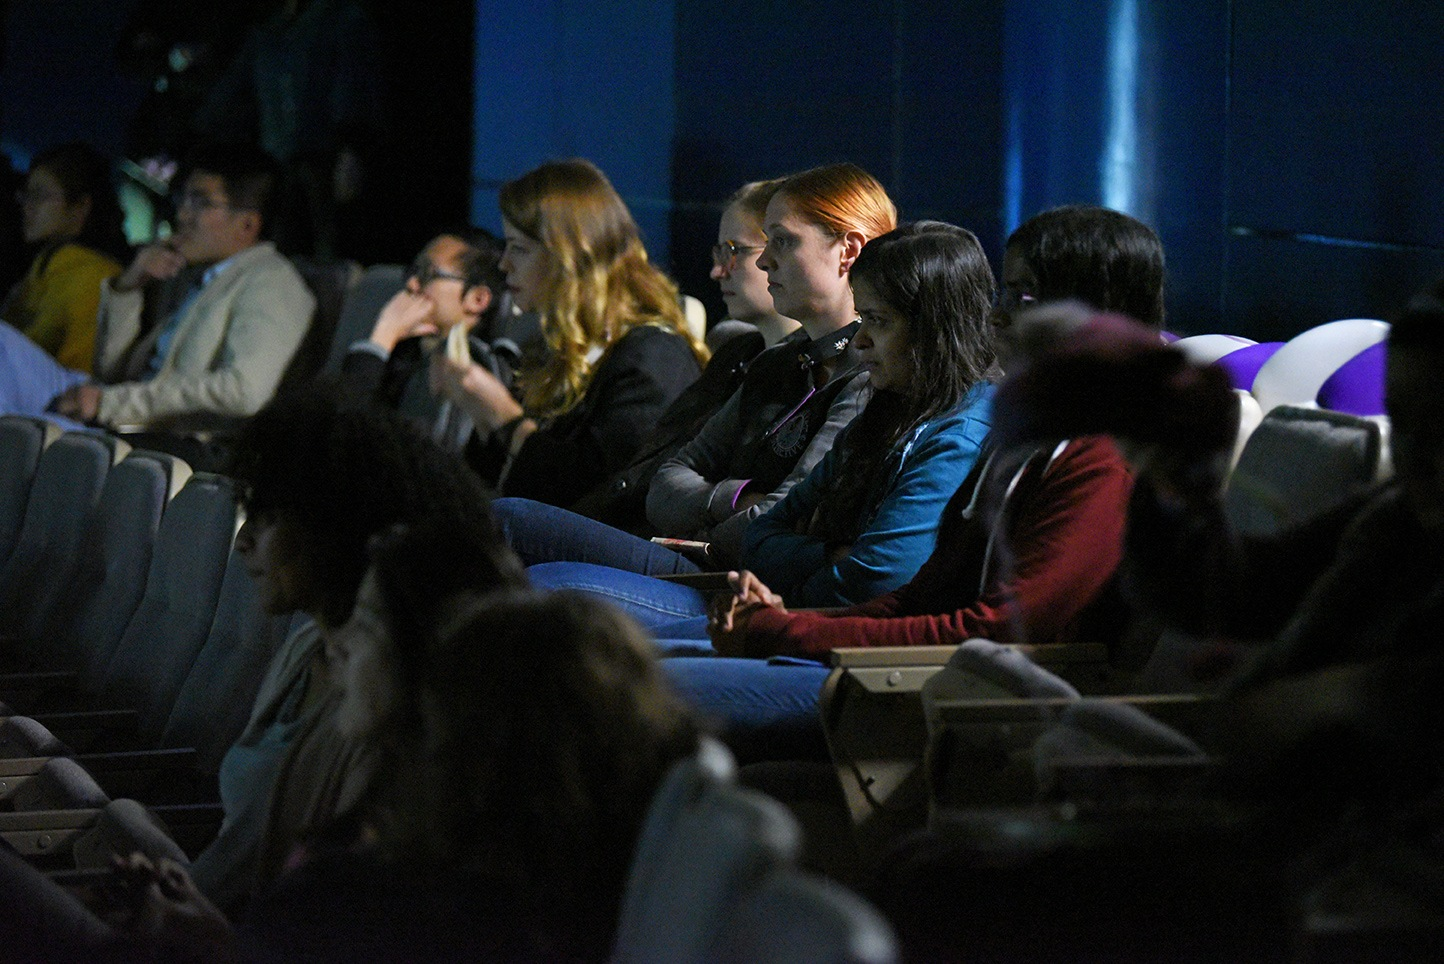 Audiences paying undivided attention and enjoying the movie.